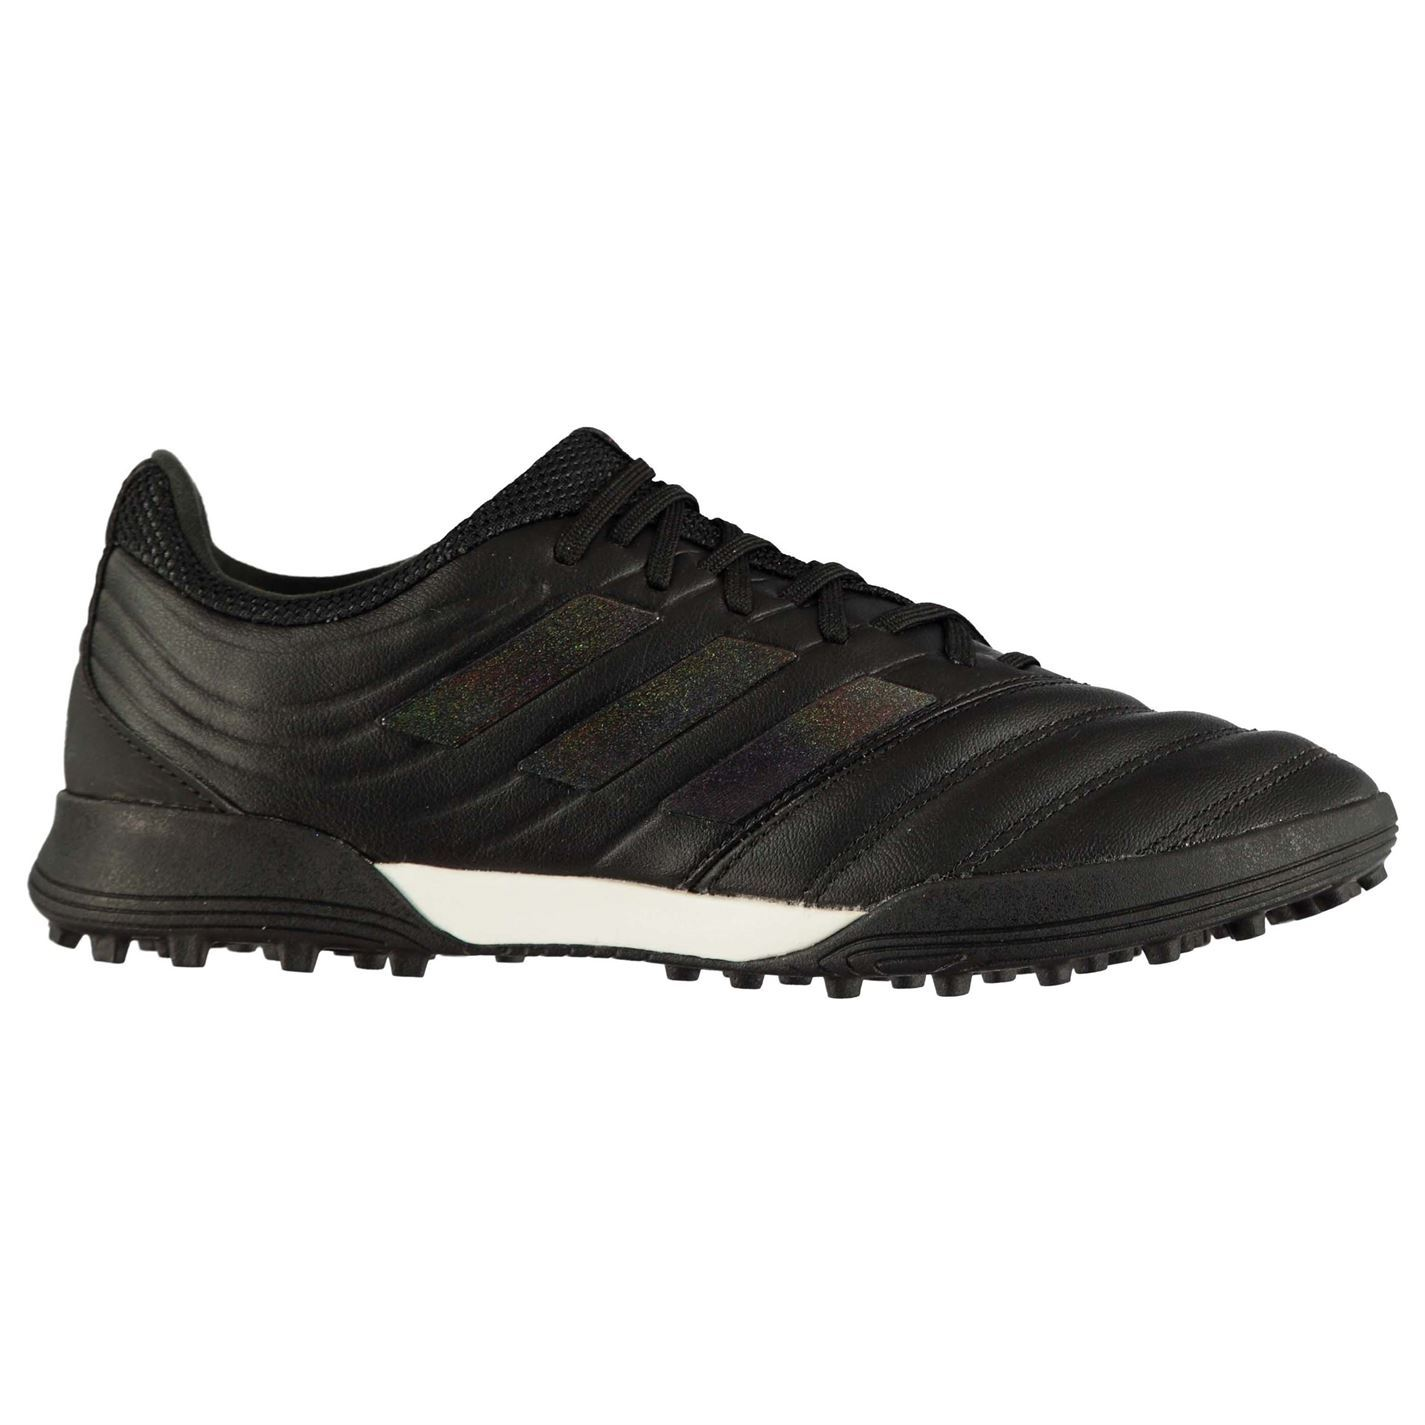 Adidas-Copa-19-3-Astro-Turf-Football-Chaussures-Homme-Football-Entrainement-Baskets miniature 10